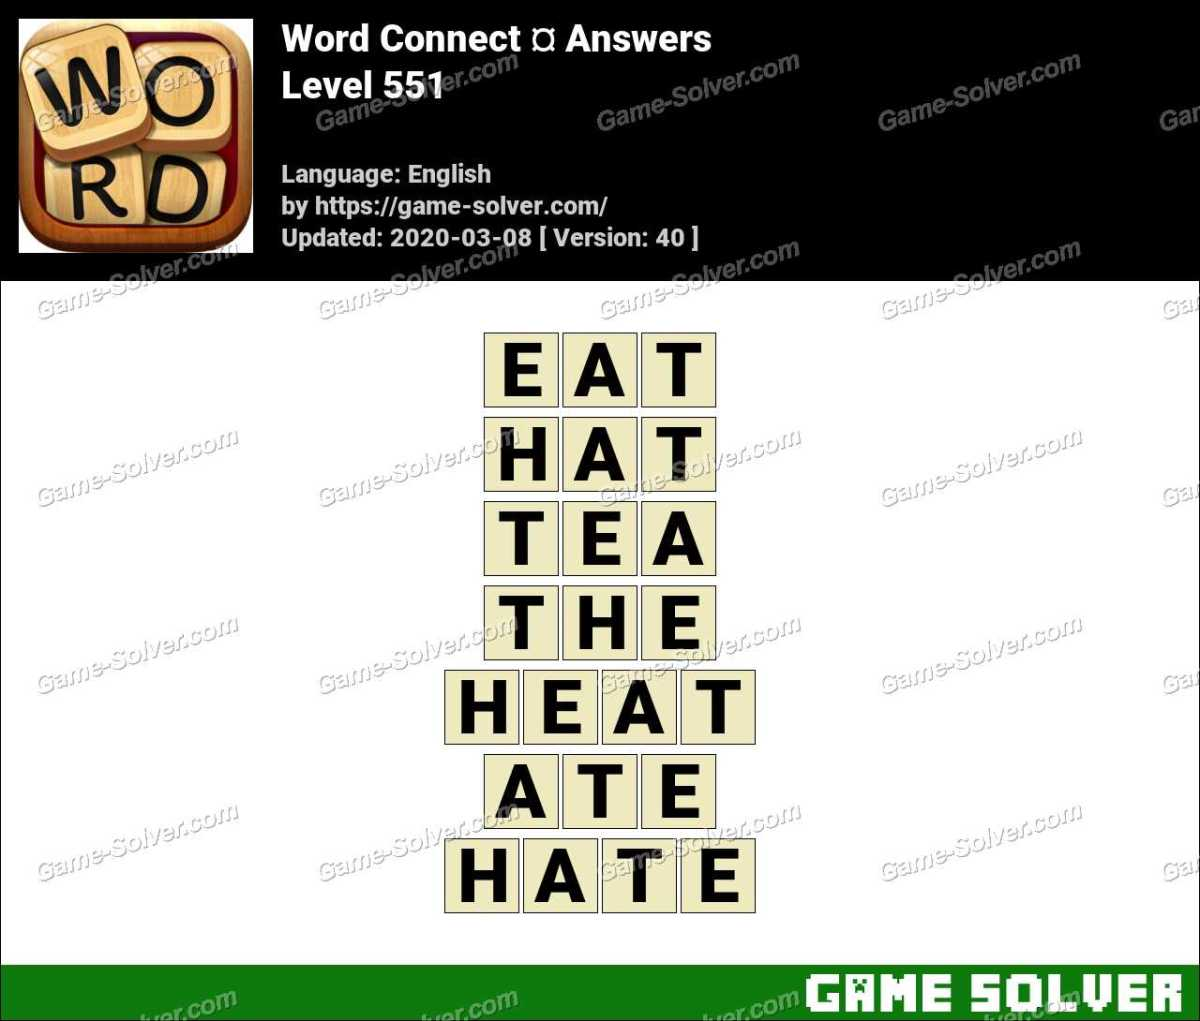 Word Connect Level 551 Answers